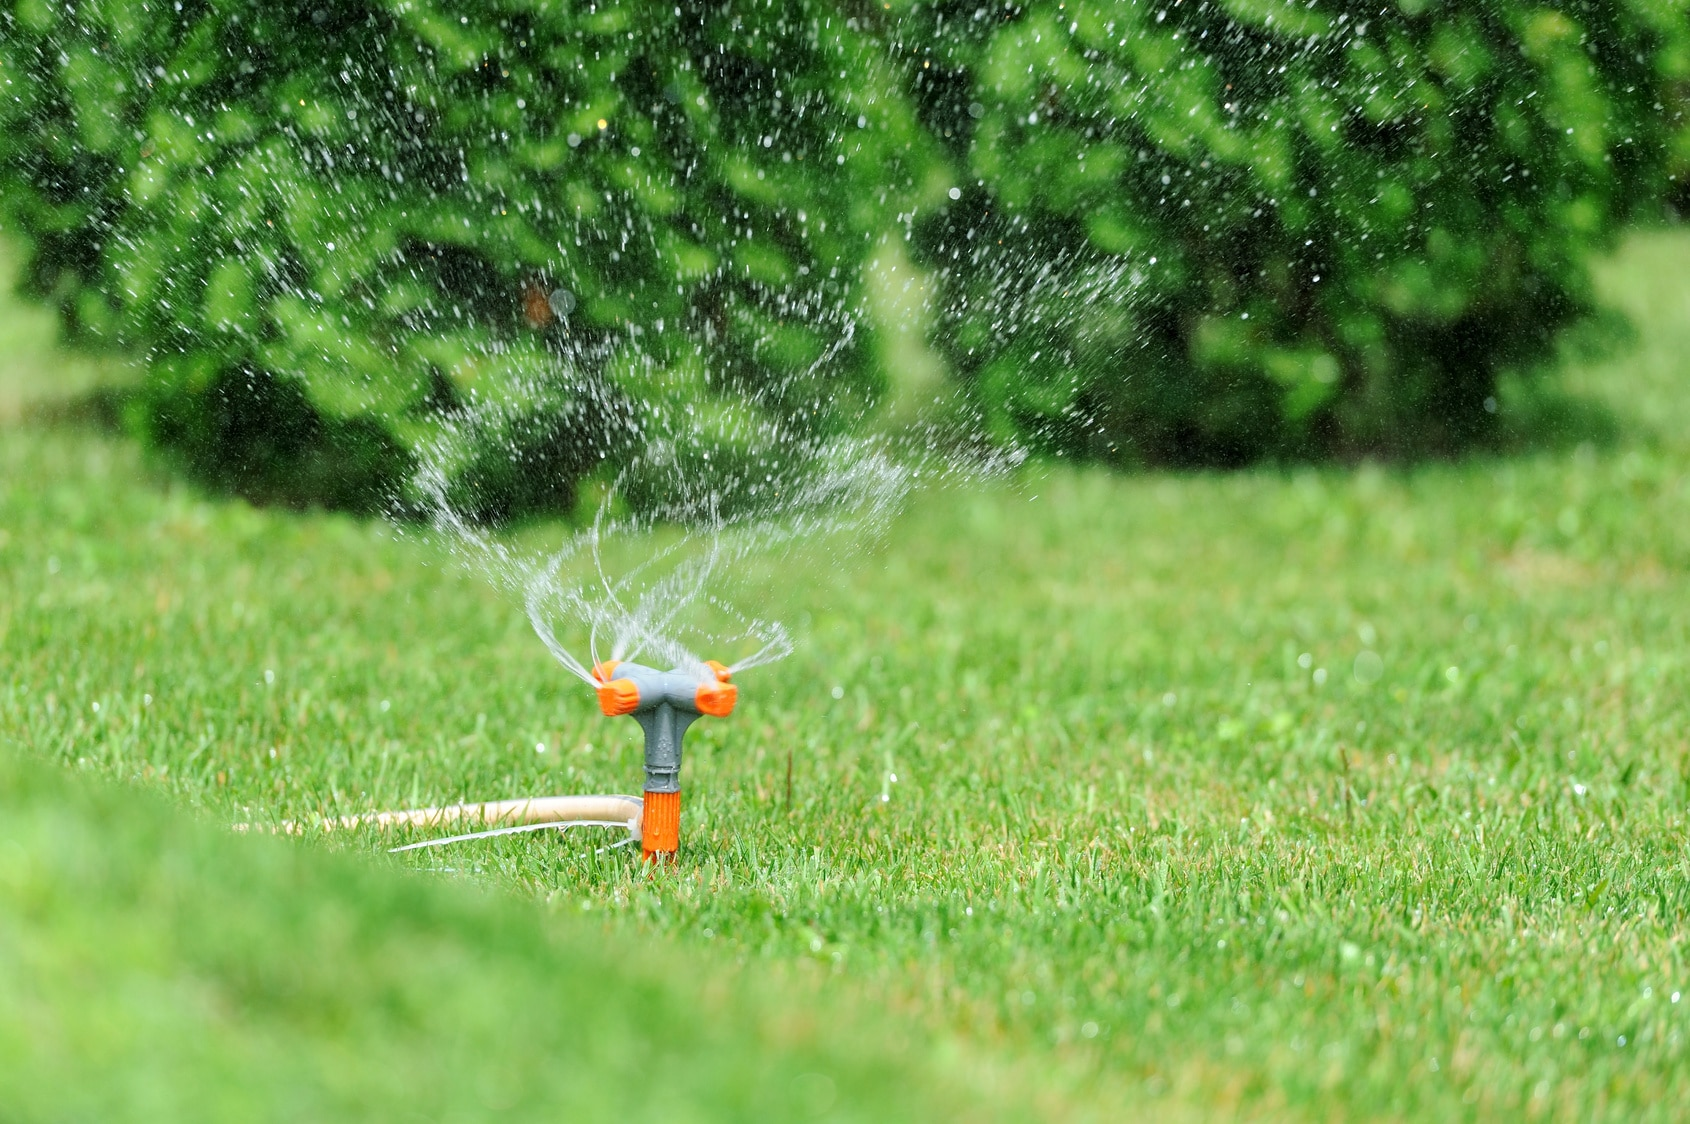 Irrigation Maintenance to Keep Your Lawn Healthy